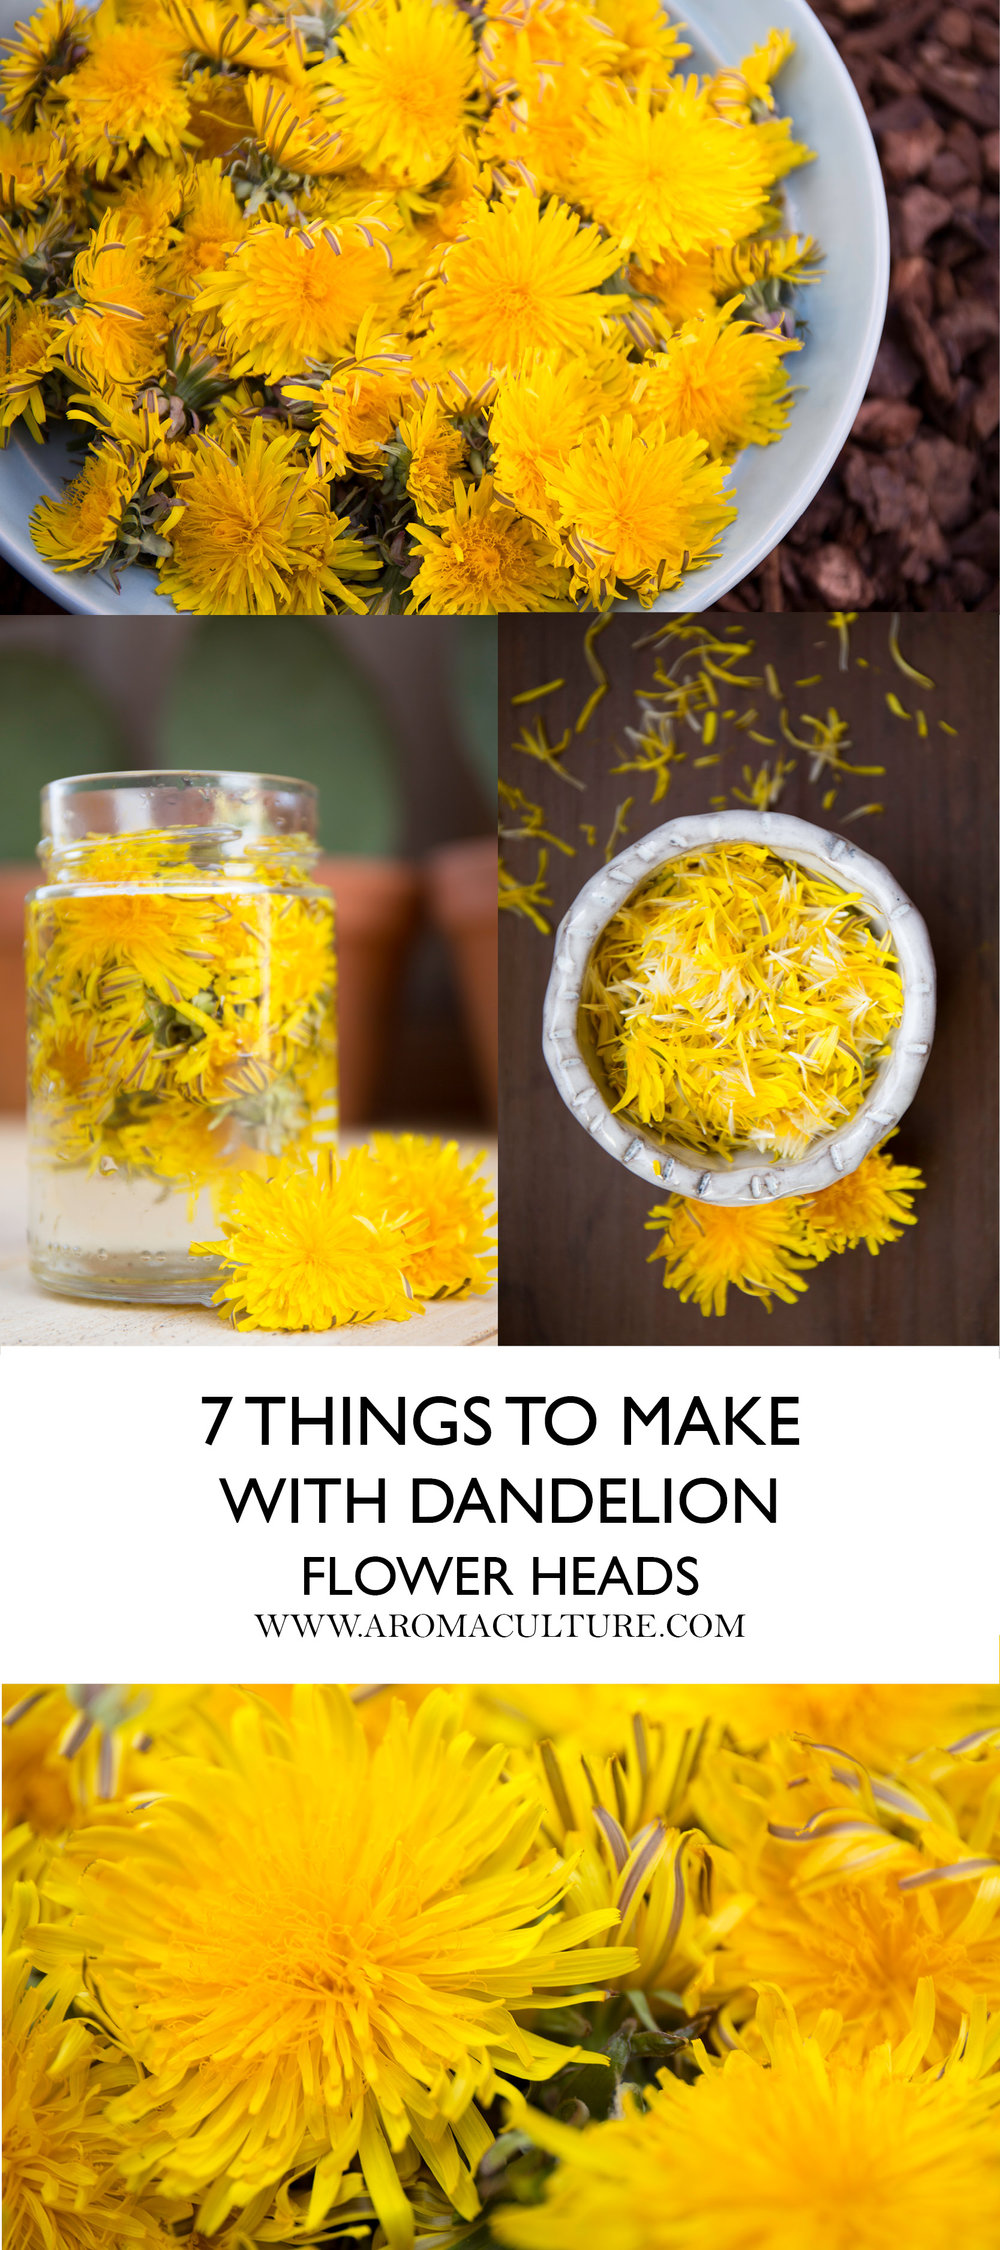 7 things to make with dandelion flower heads aromaculture.jpg